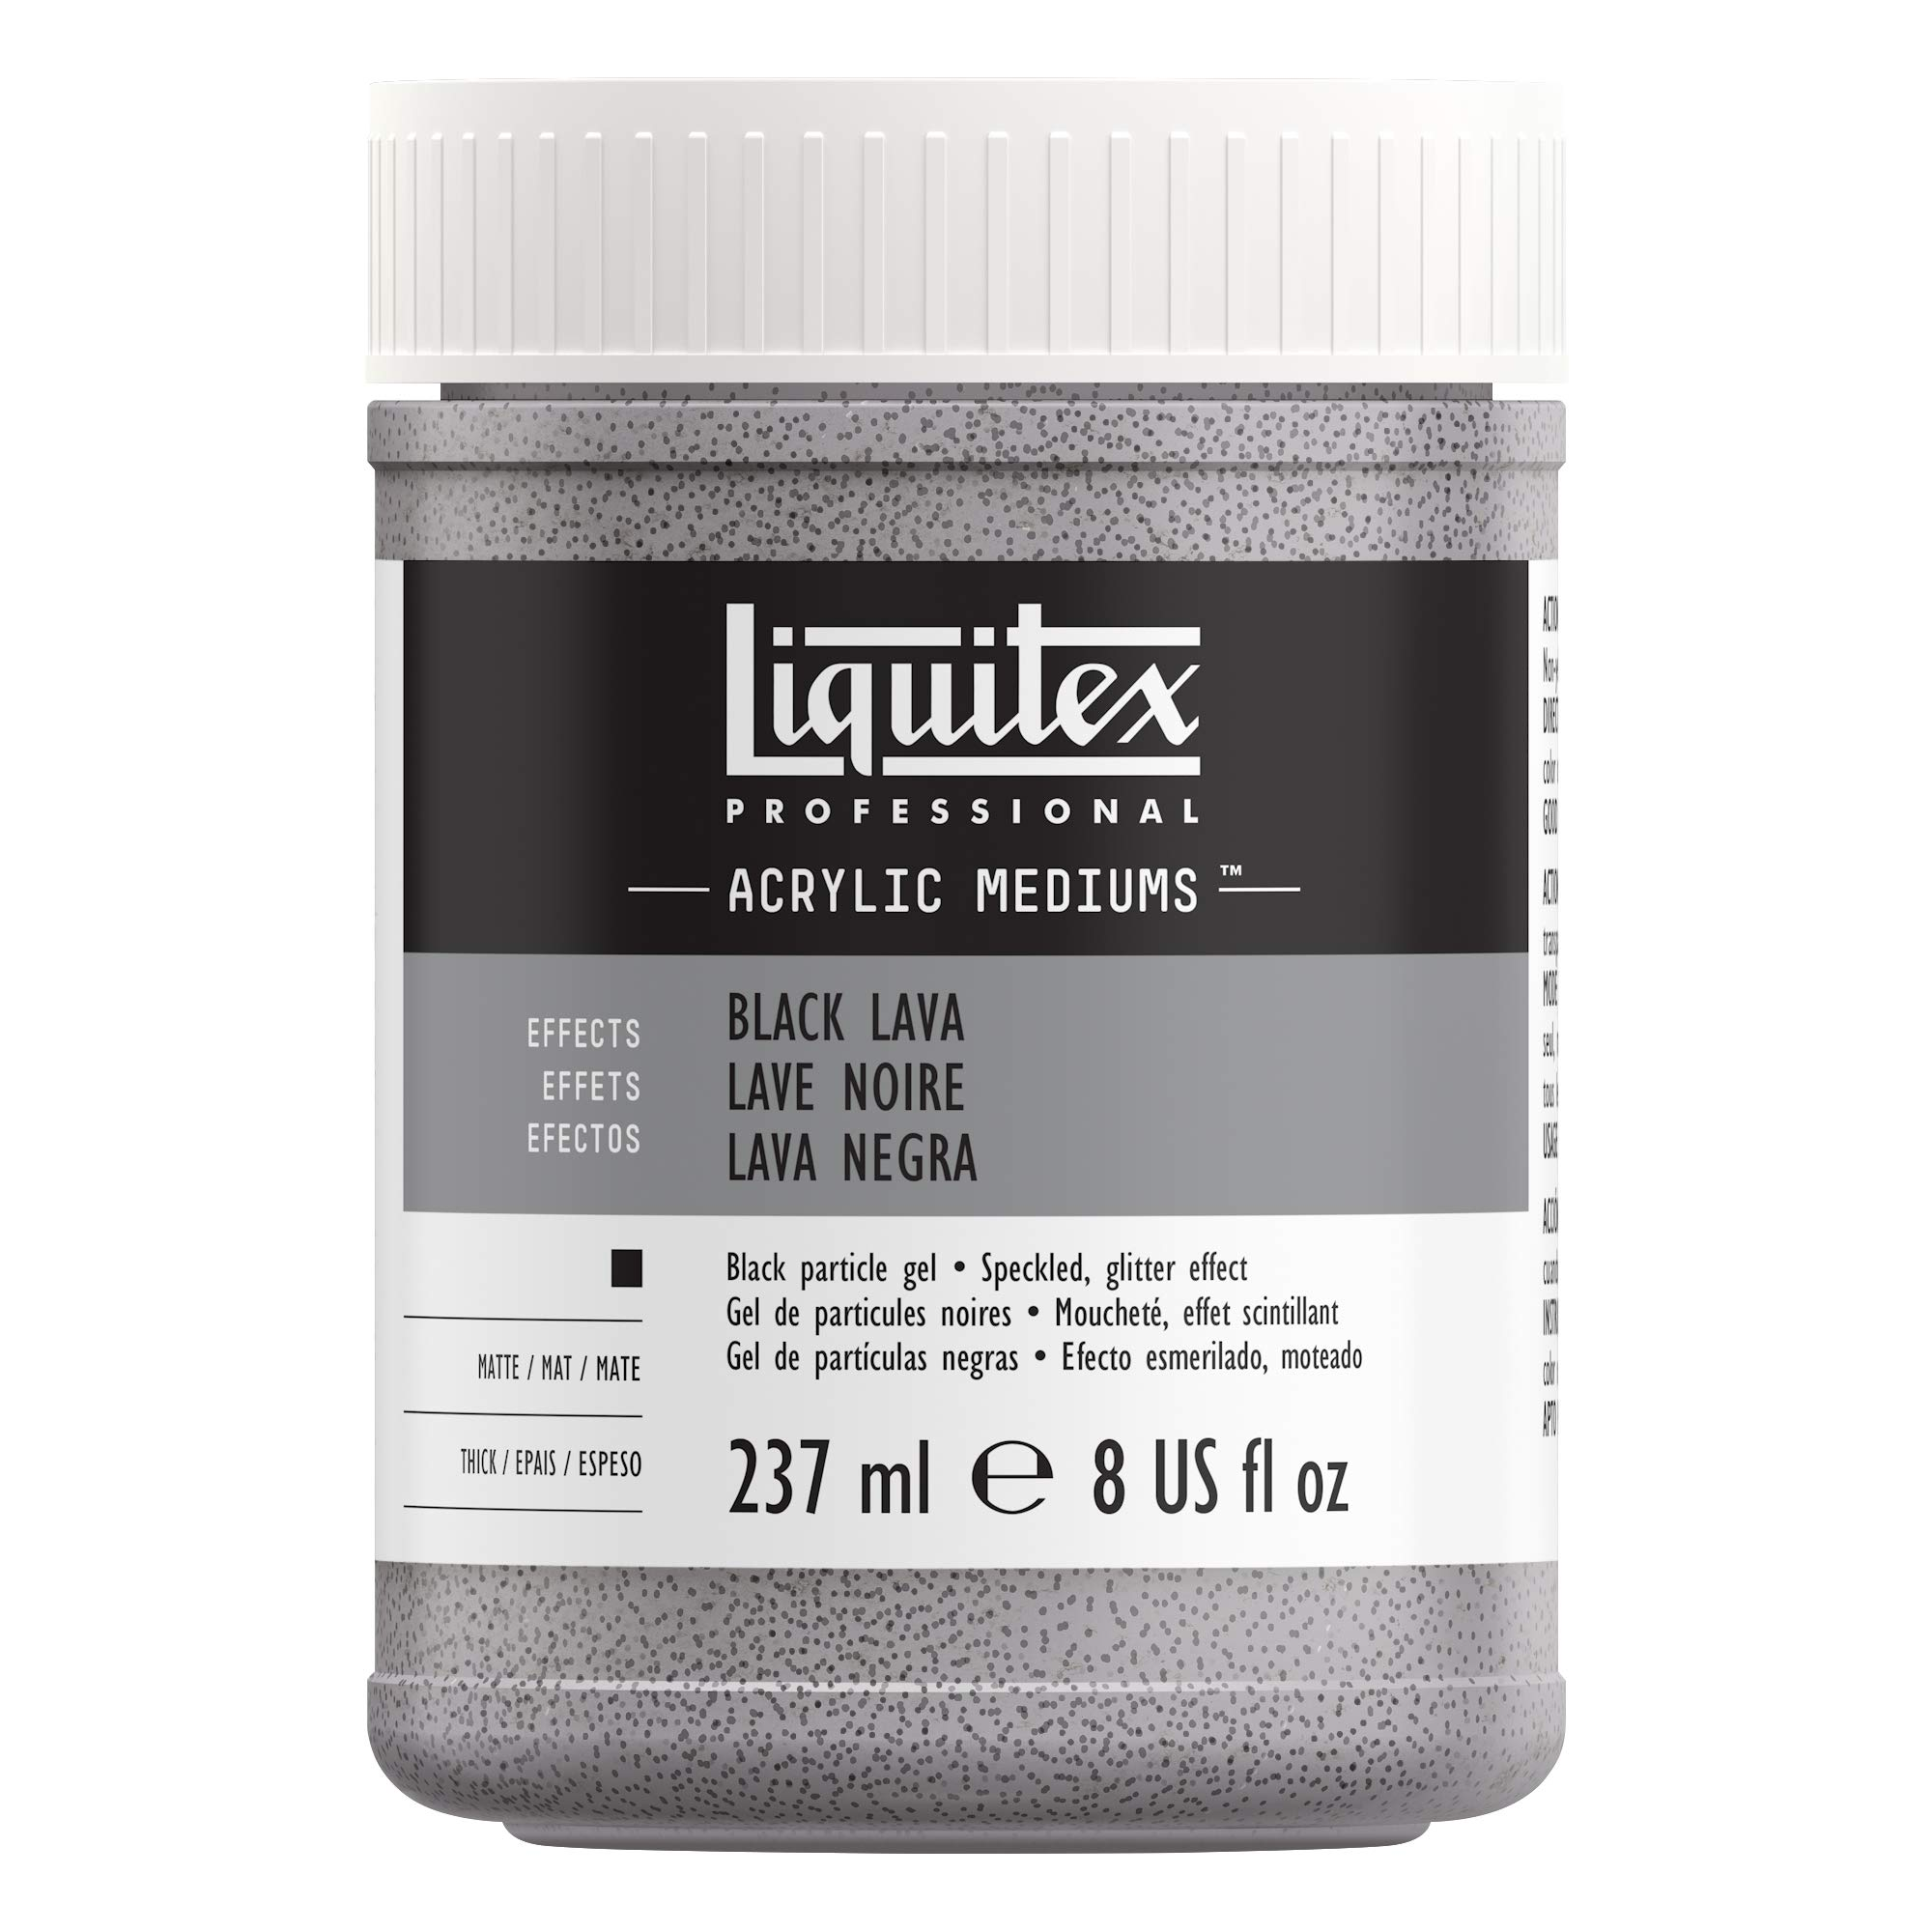 Liquitex Professional Effects Medium, 8-oz, Black Lava